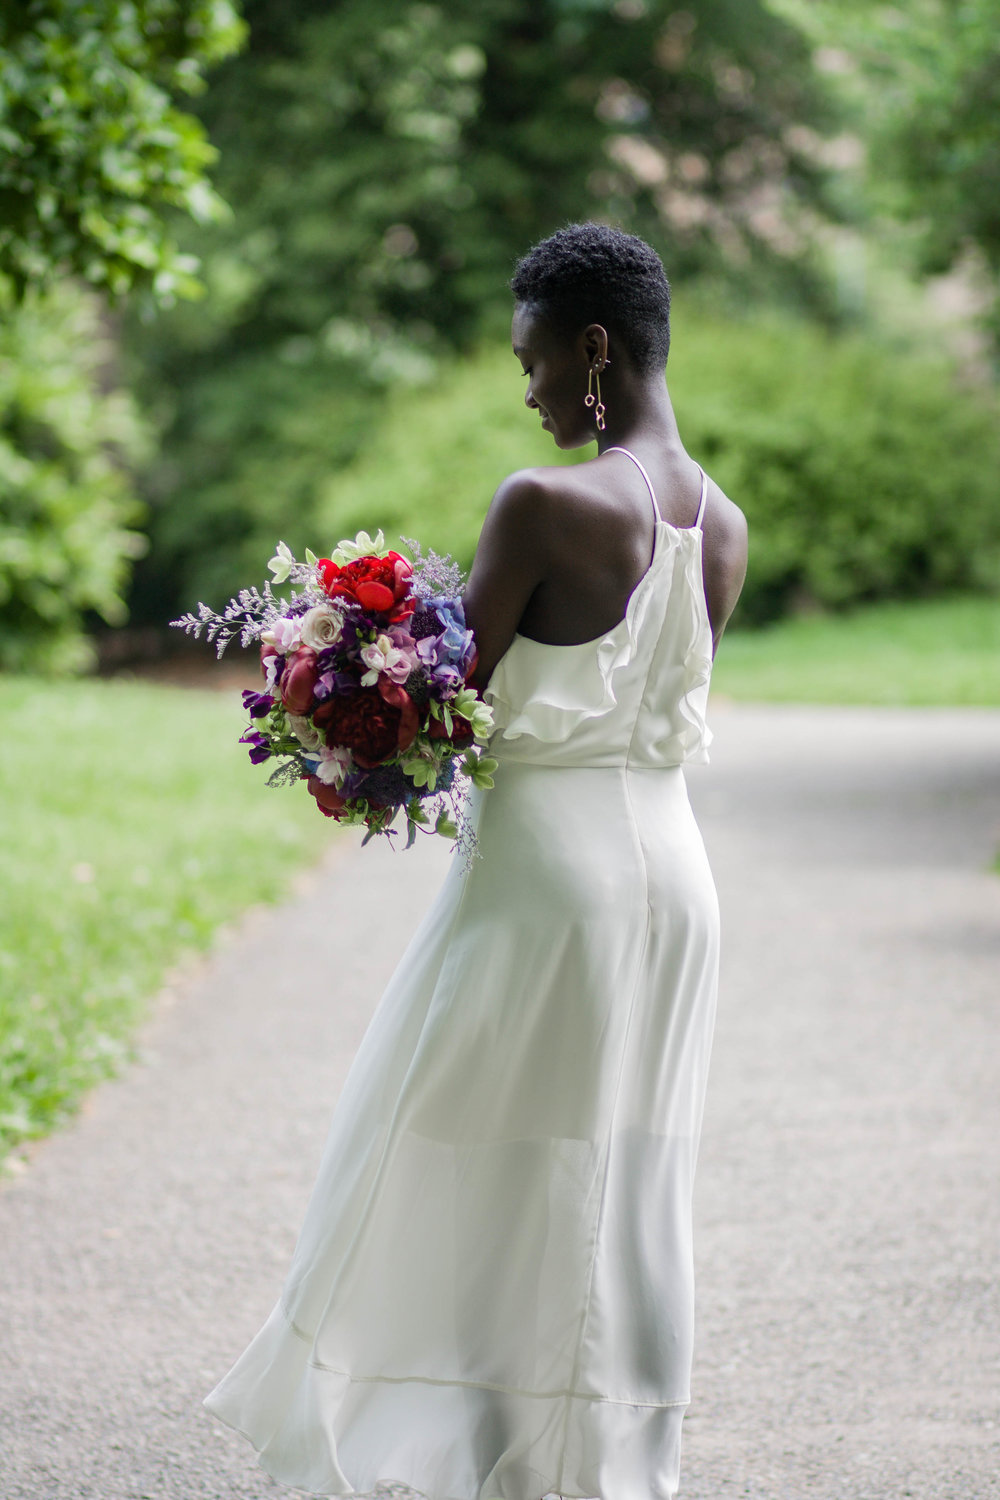 In11Views Photography -Tenneal McNair - Washington DC - Maryland Photographer - Wedding Photography - Engagement Photography - Elopement Photography